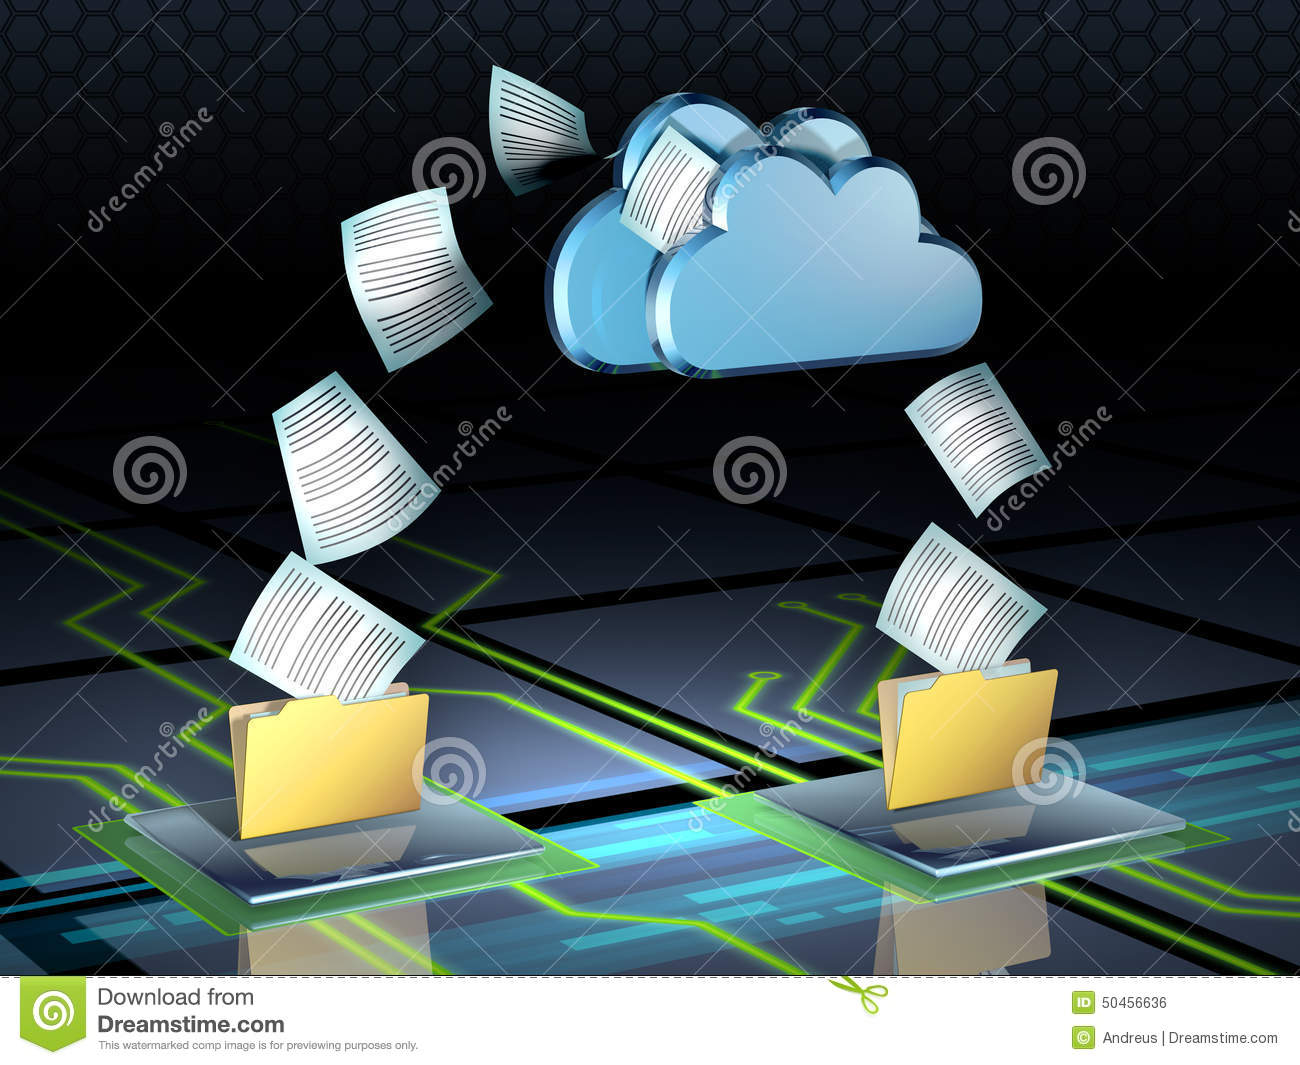 cloud storage thesis The main goal of this dissertation is to show how deduplication can be achieved in a virtualized system1, towards finding and eliminating redundant data in the context of cloud computing services 1system where there is one physical server running several virtual machines that map their virtual disks into a shared storage.